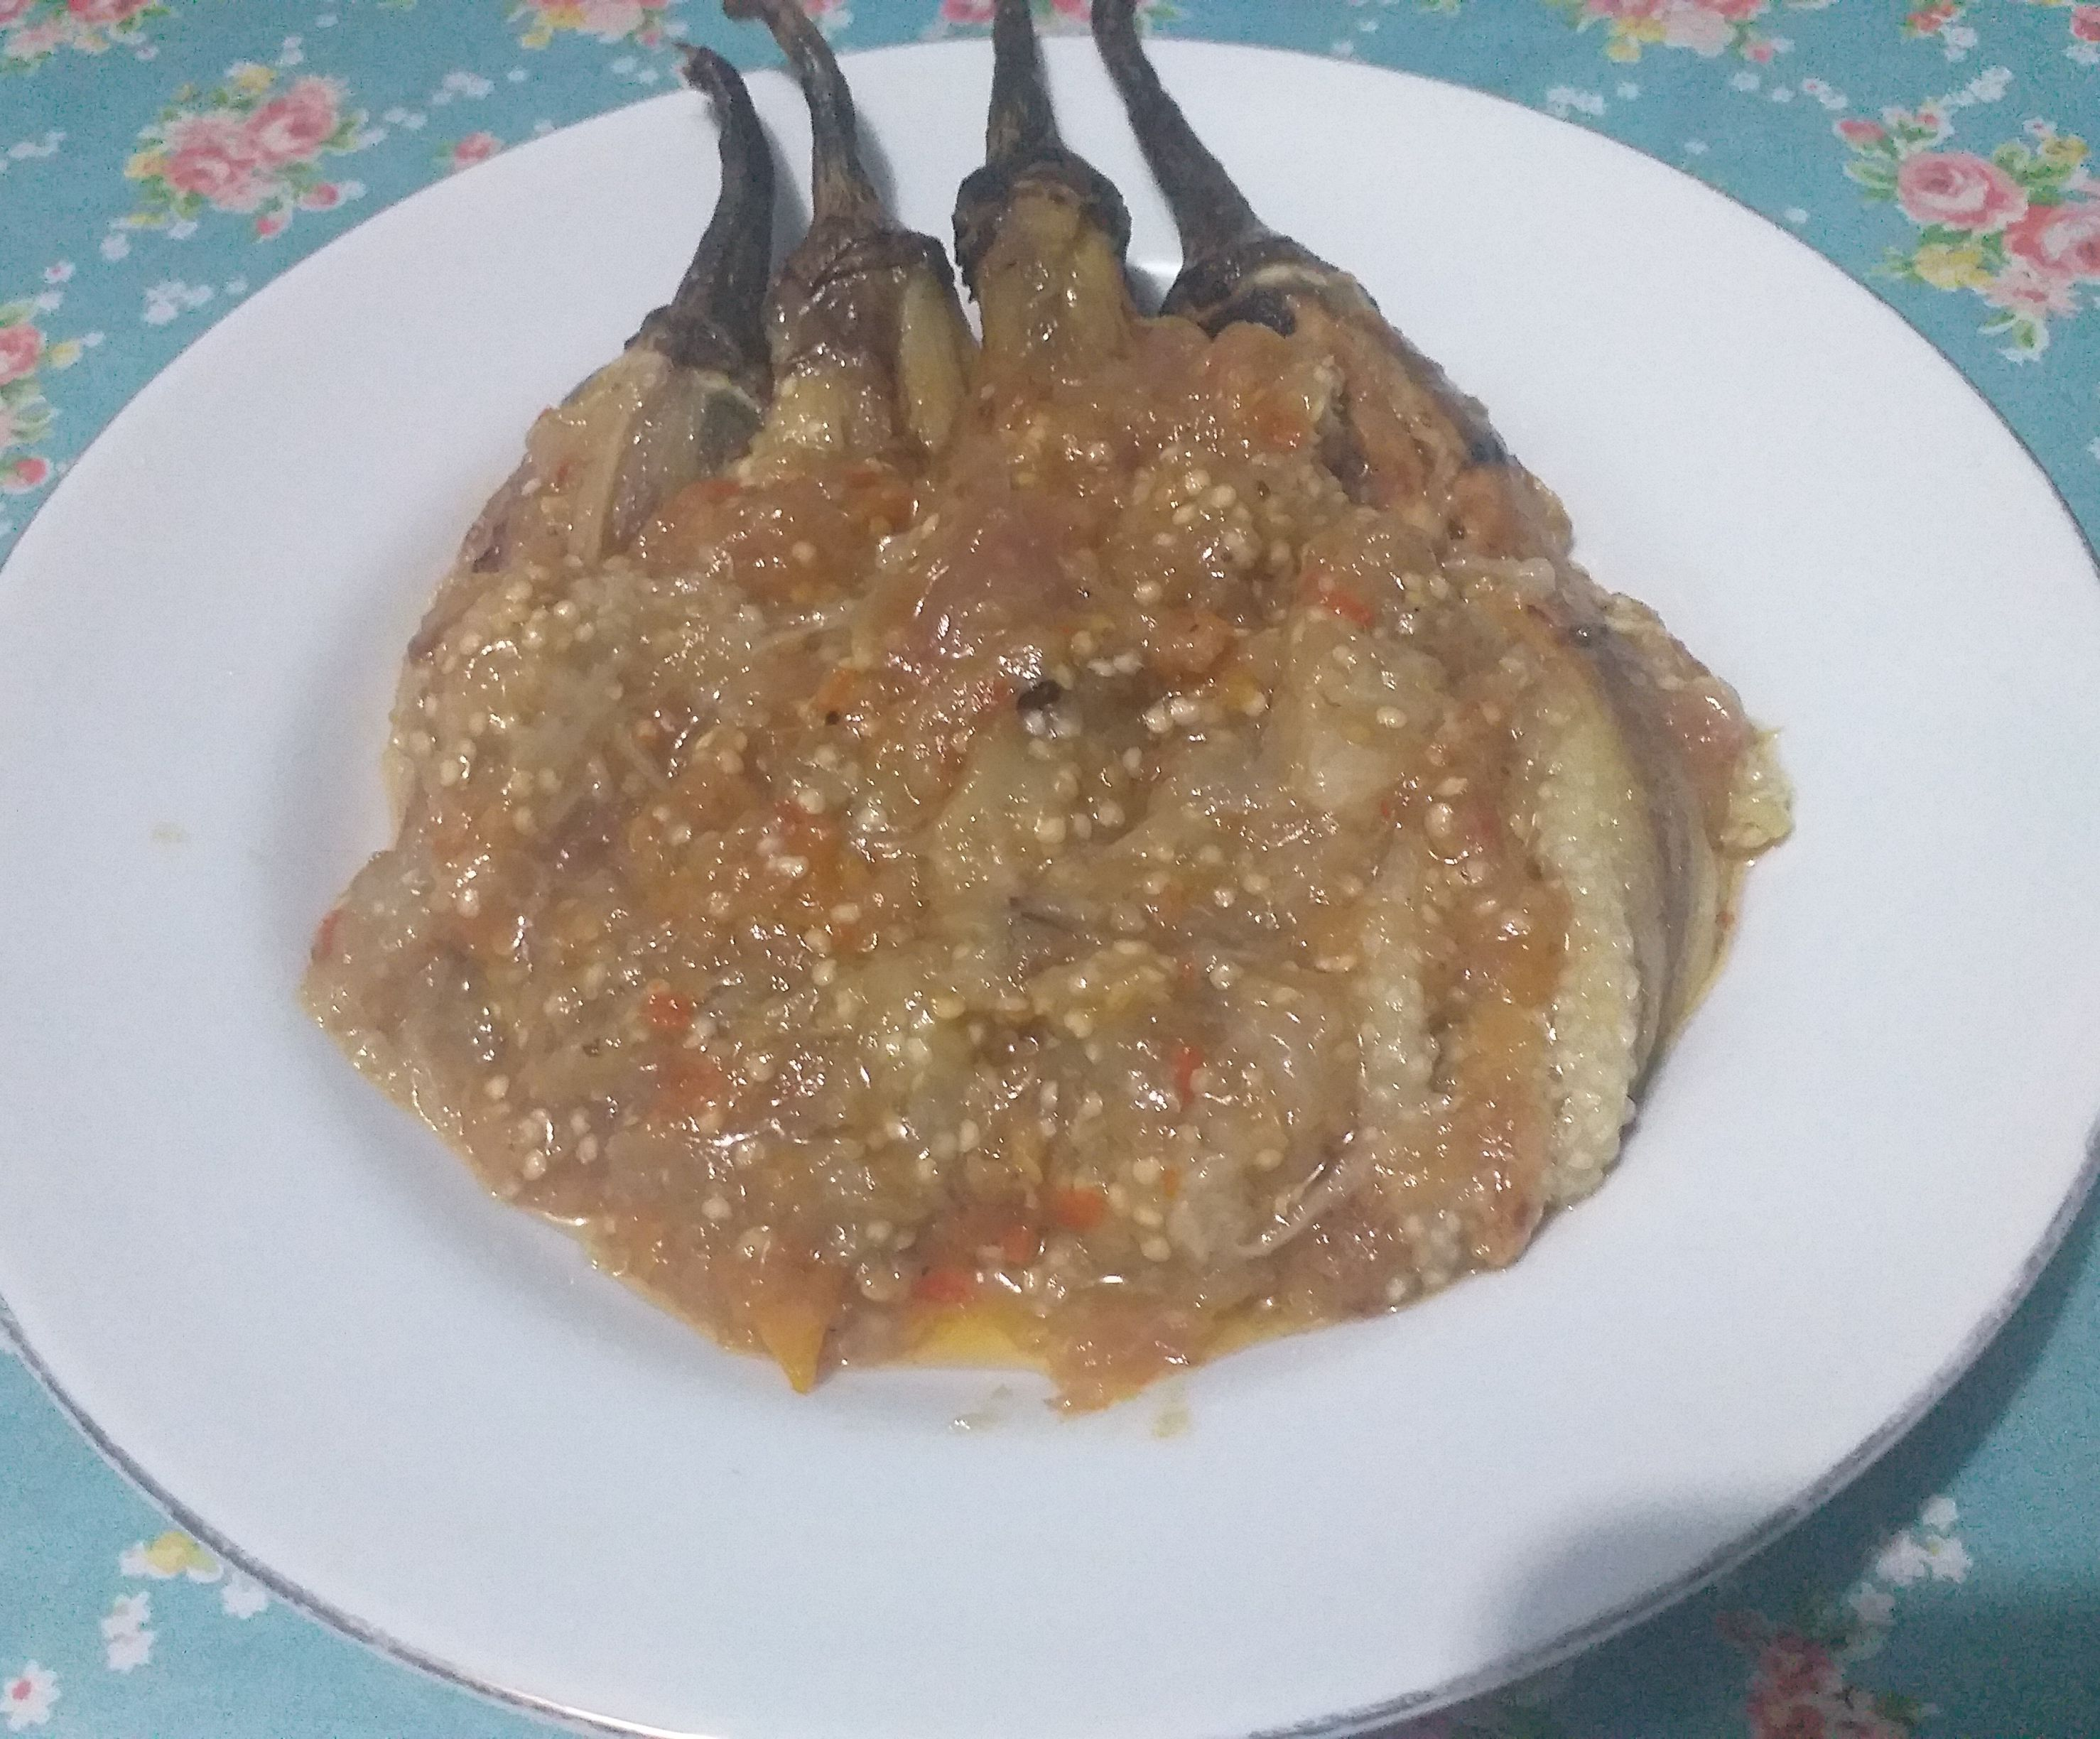 Grilled Eggplants With Chili Sauce